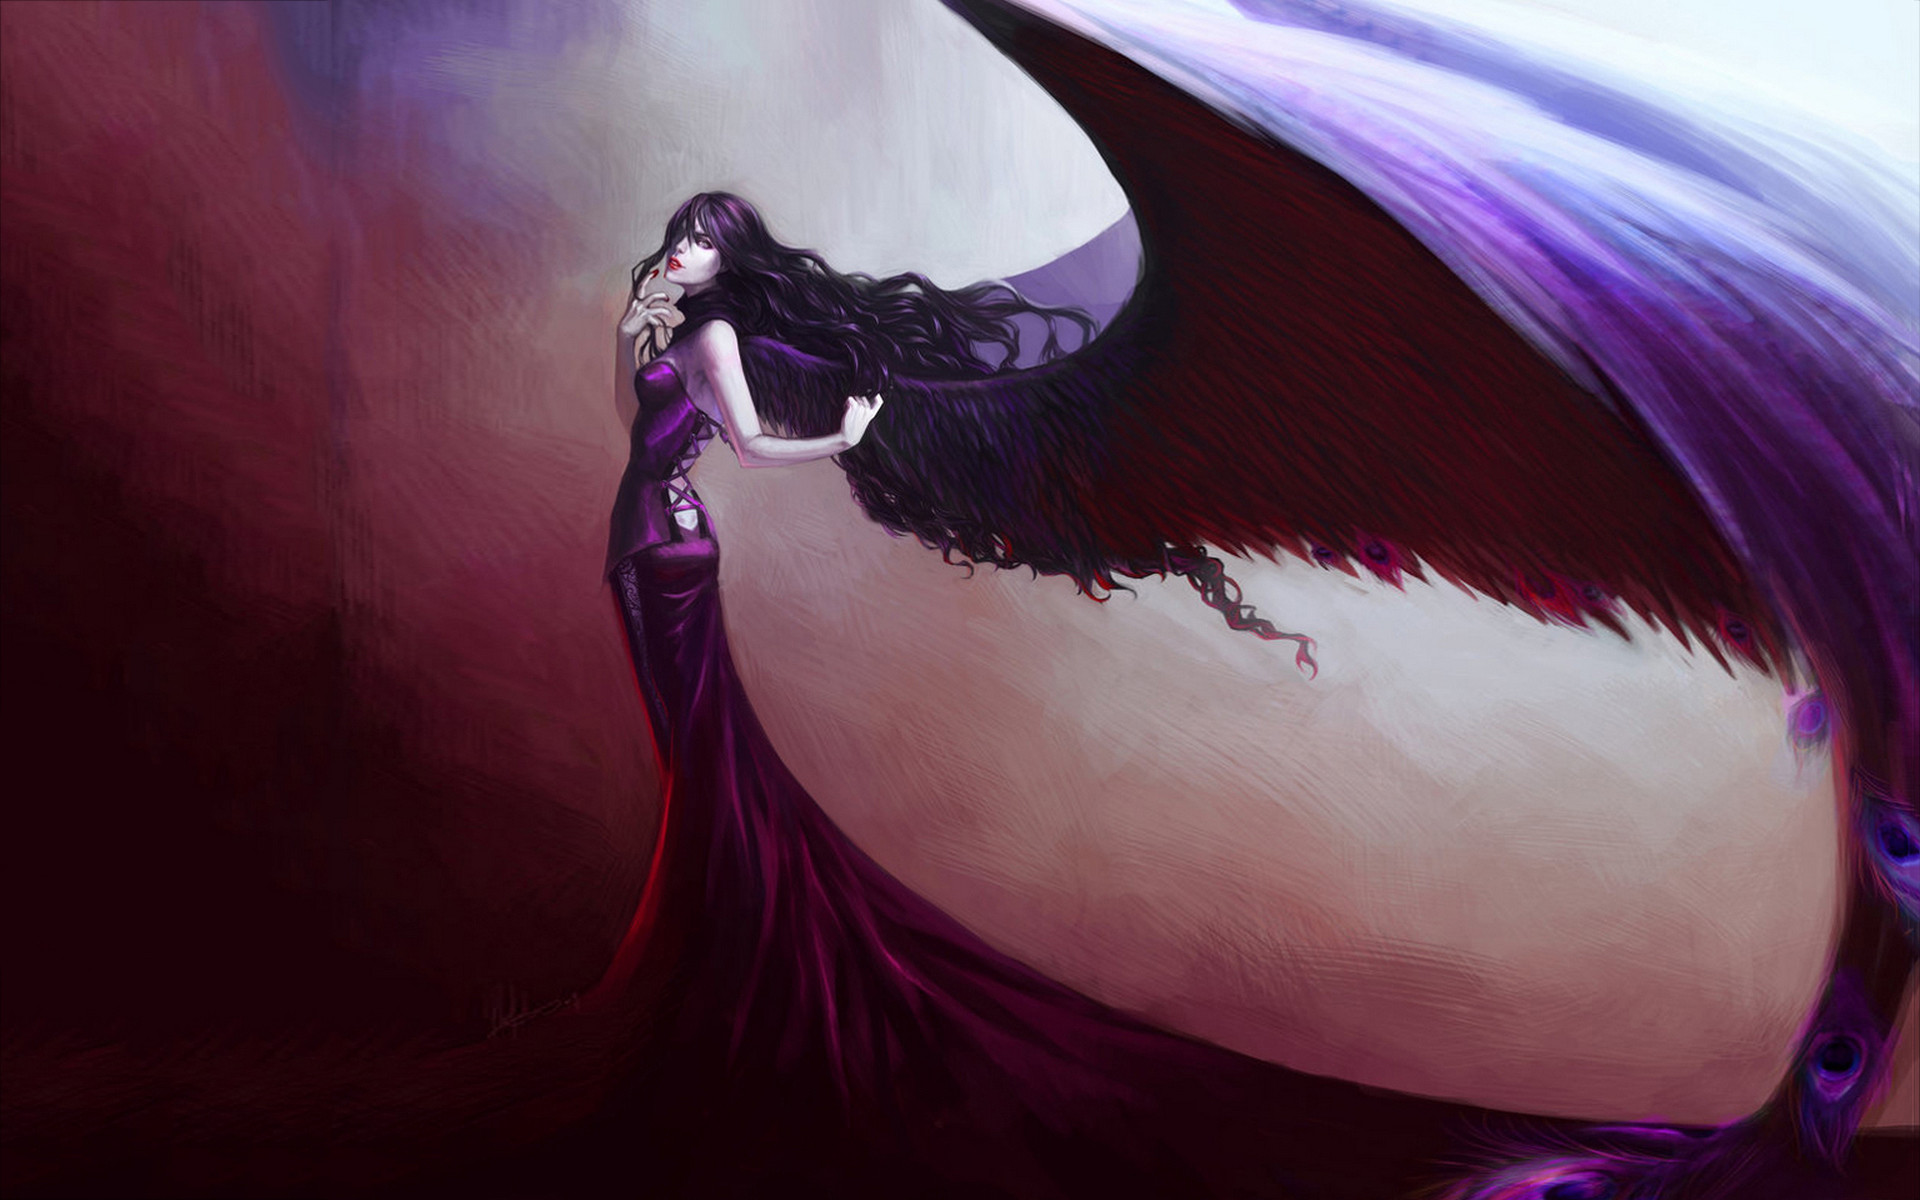 Fall Desktop Wallpaper 2500x1600 Anime Gothic Angel Wallpaper 61 Images